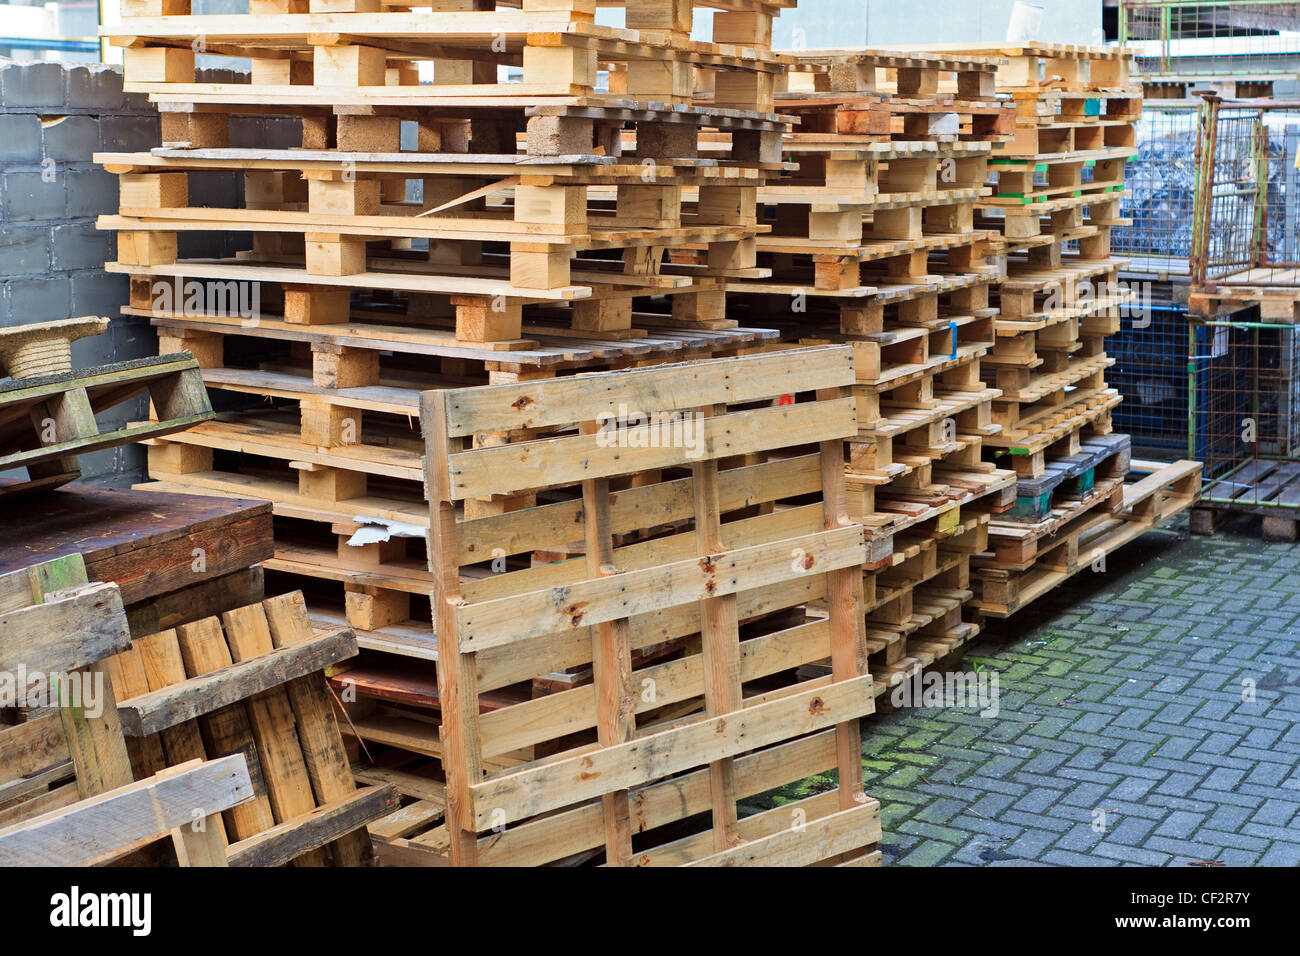 wooden pallet in backyard - Stock Image